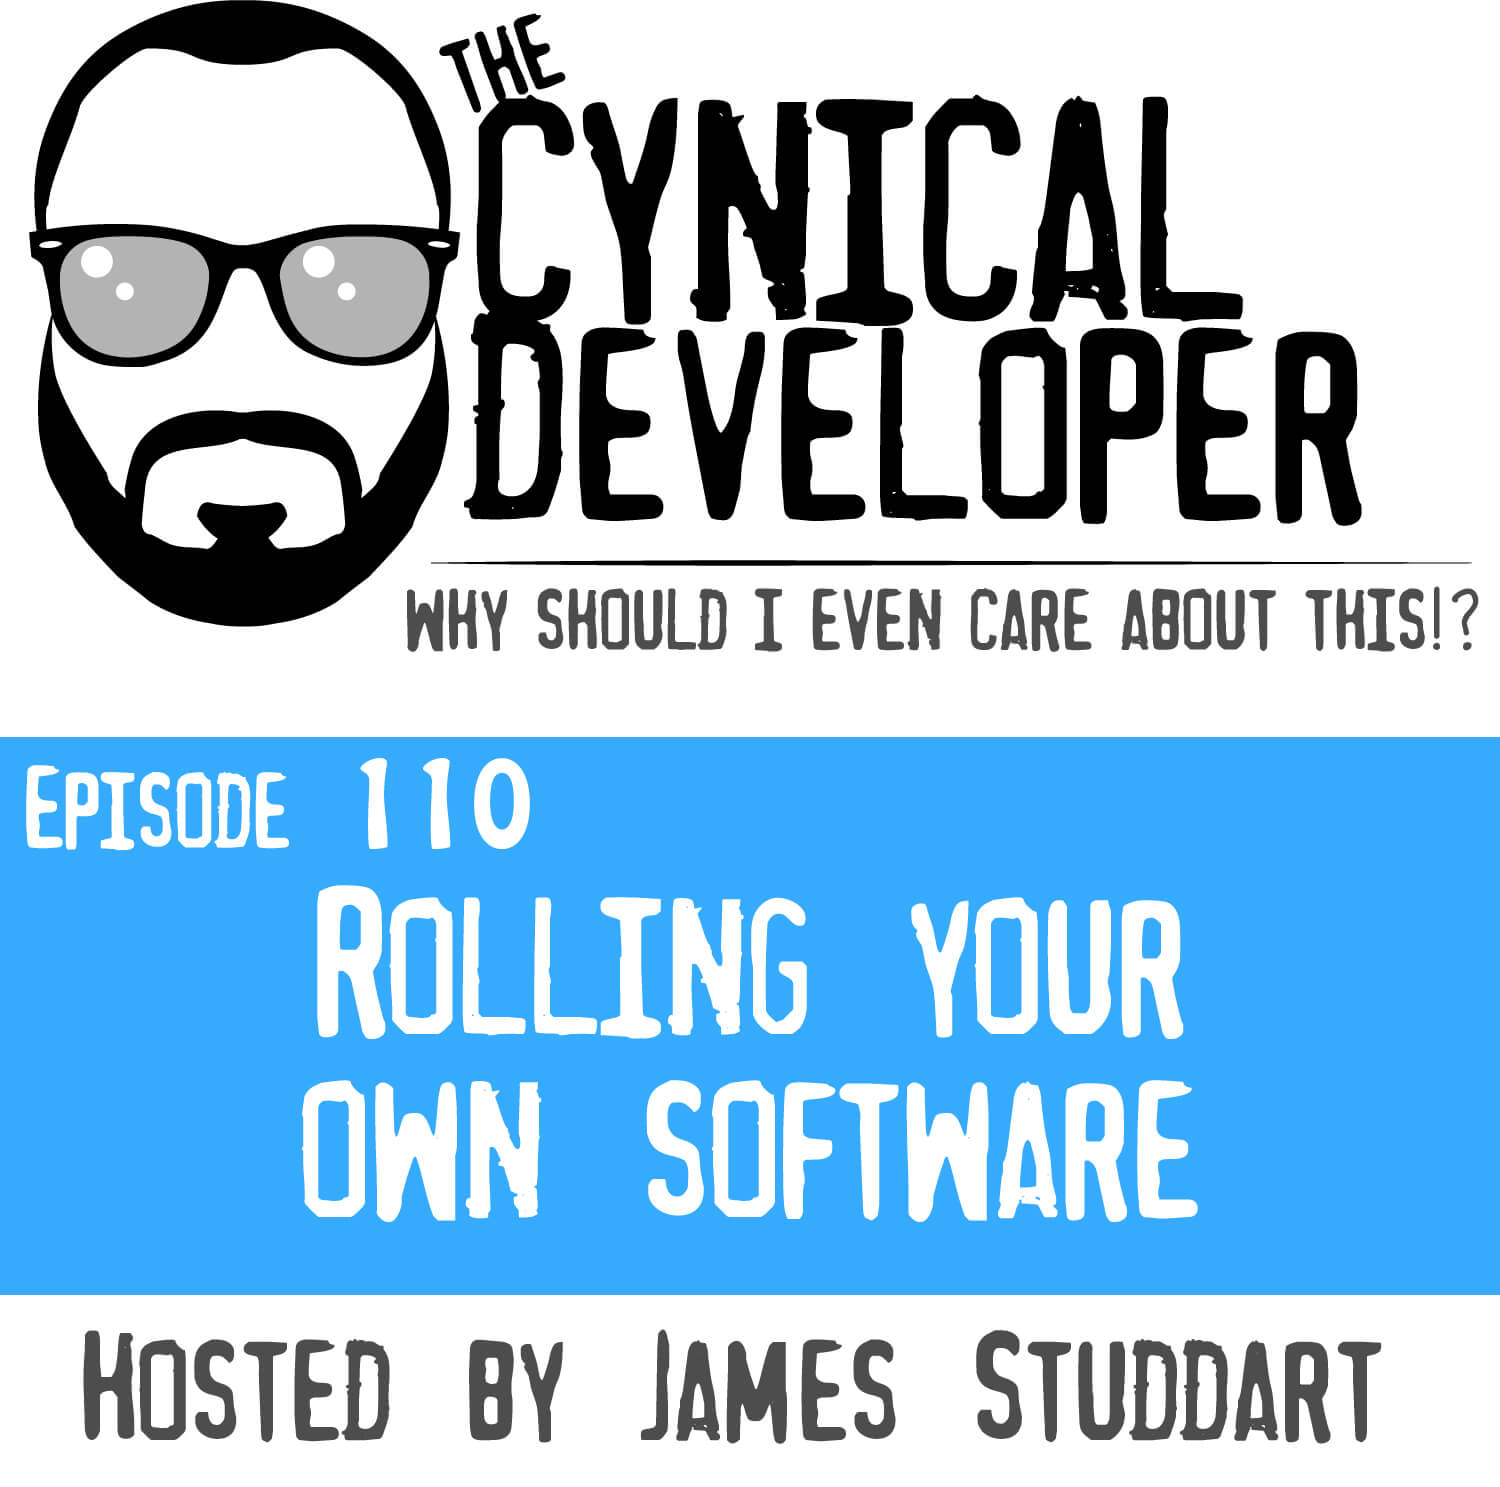 Episode 110 - Rolling your own software